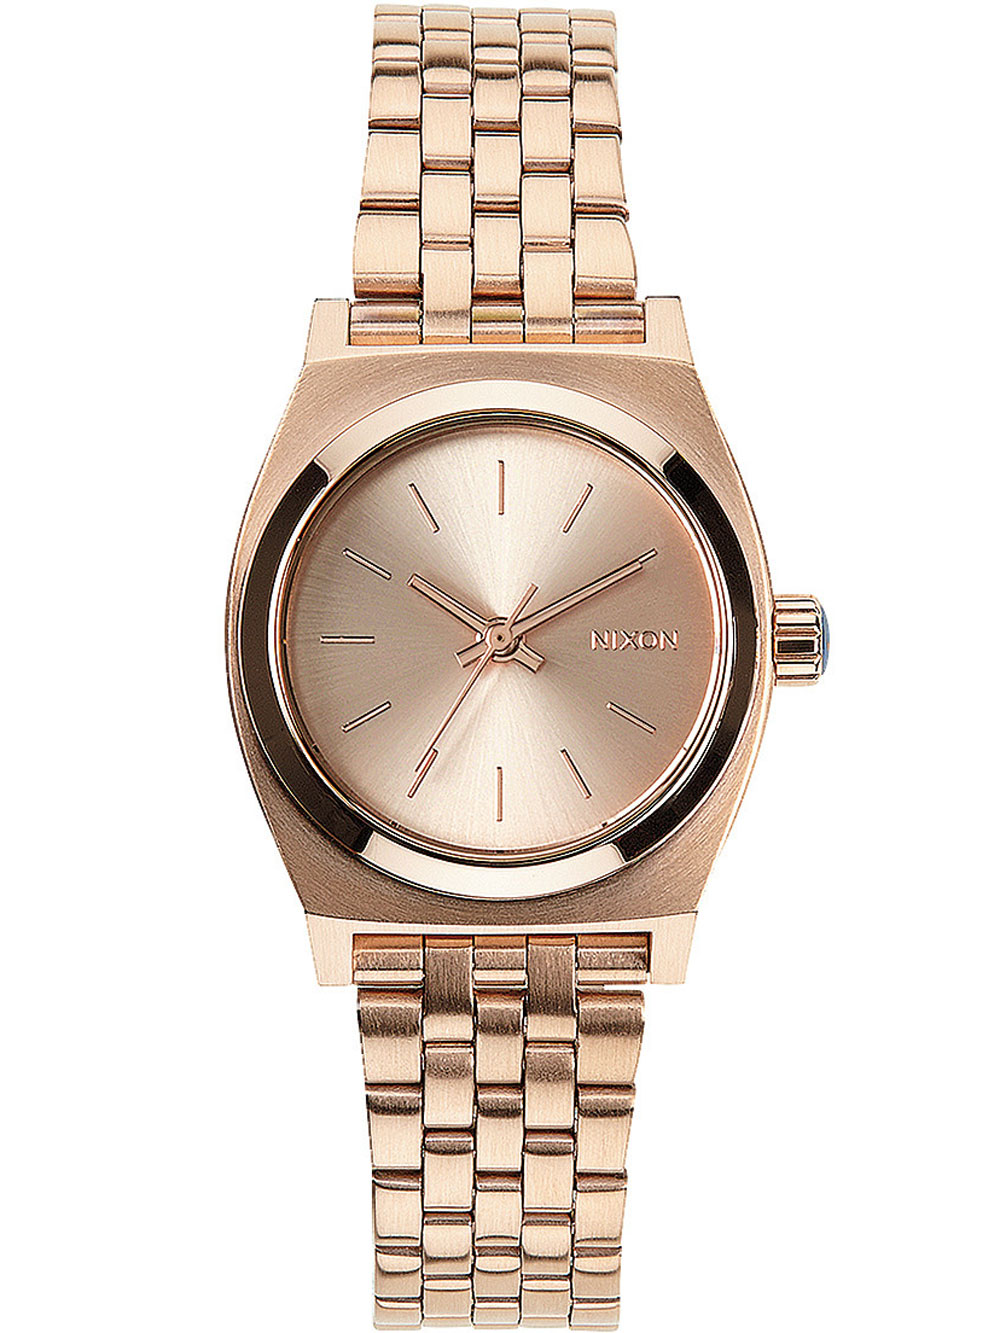 NIXON A399-897 Small Time Teller All Rose Gold 26mm 10ATM